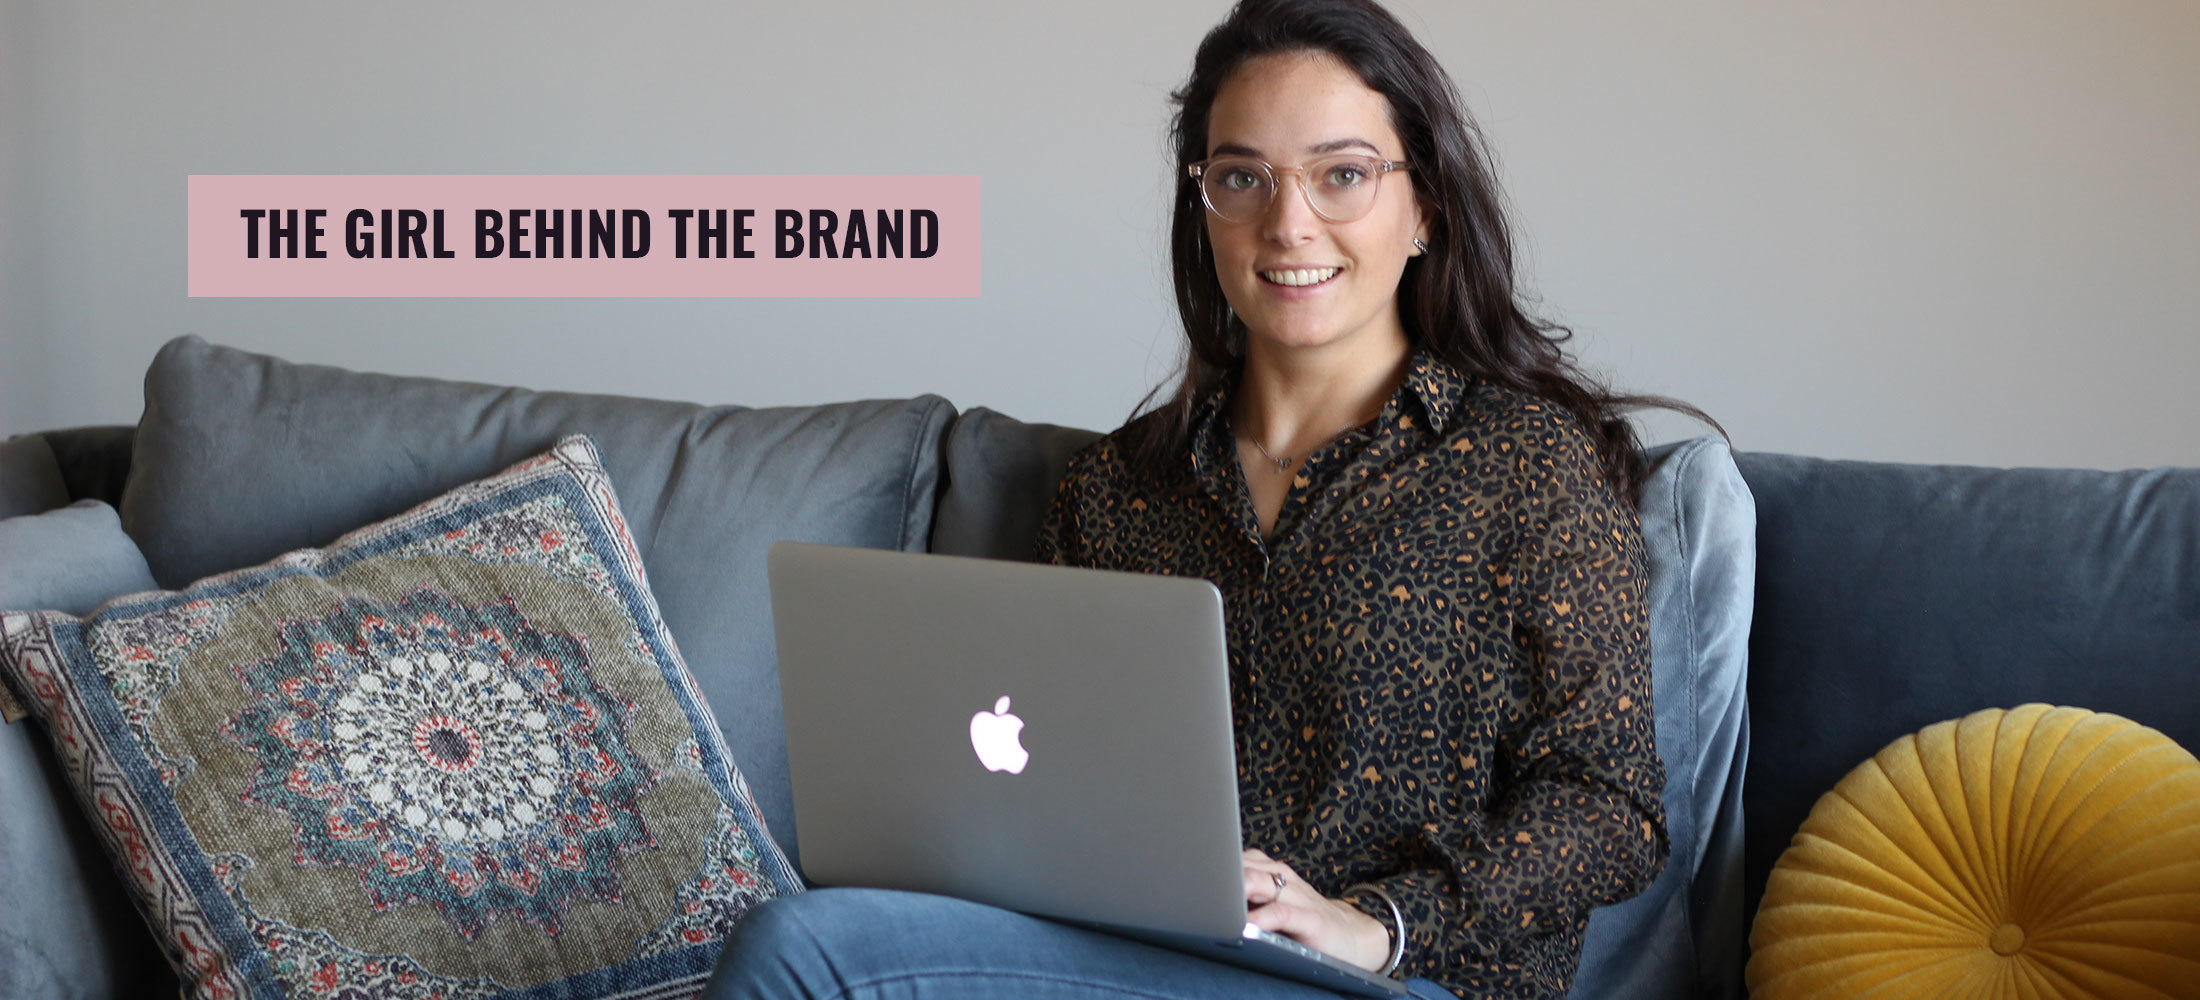 THE GIRL BEHIND THE BRAND